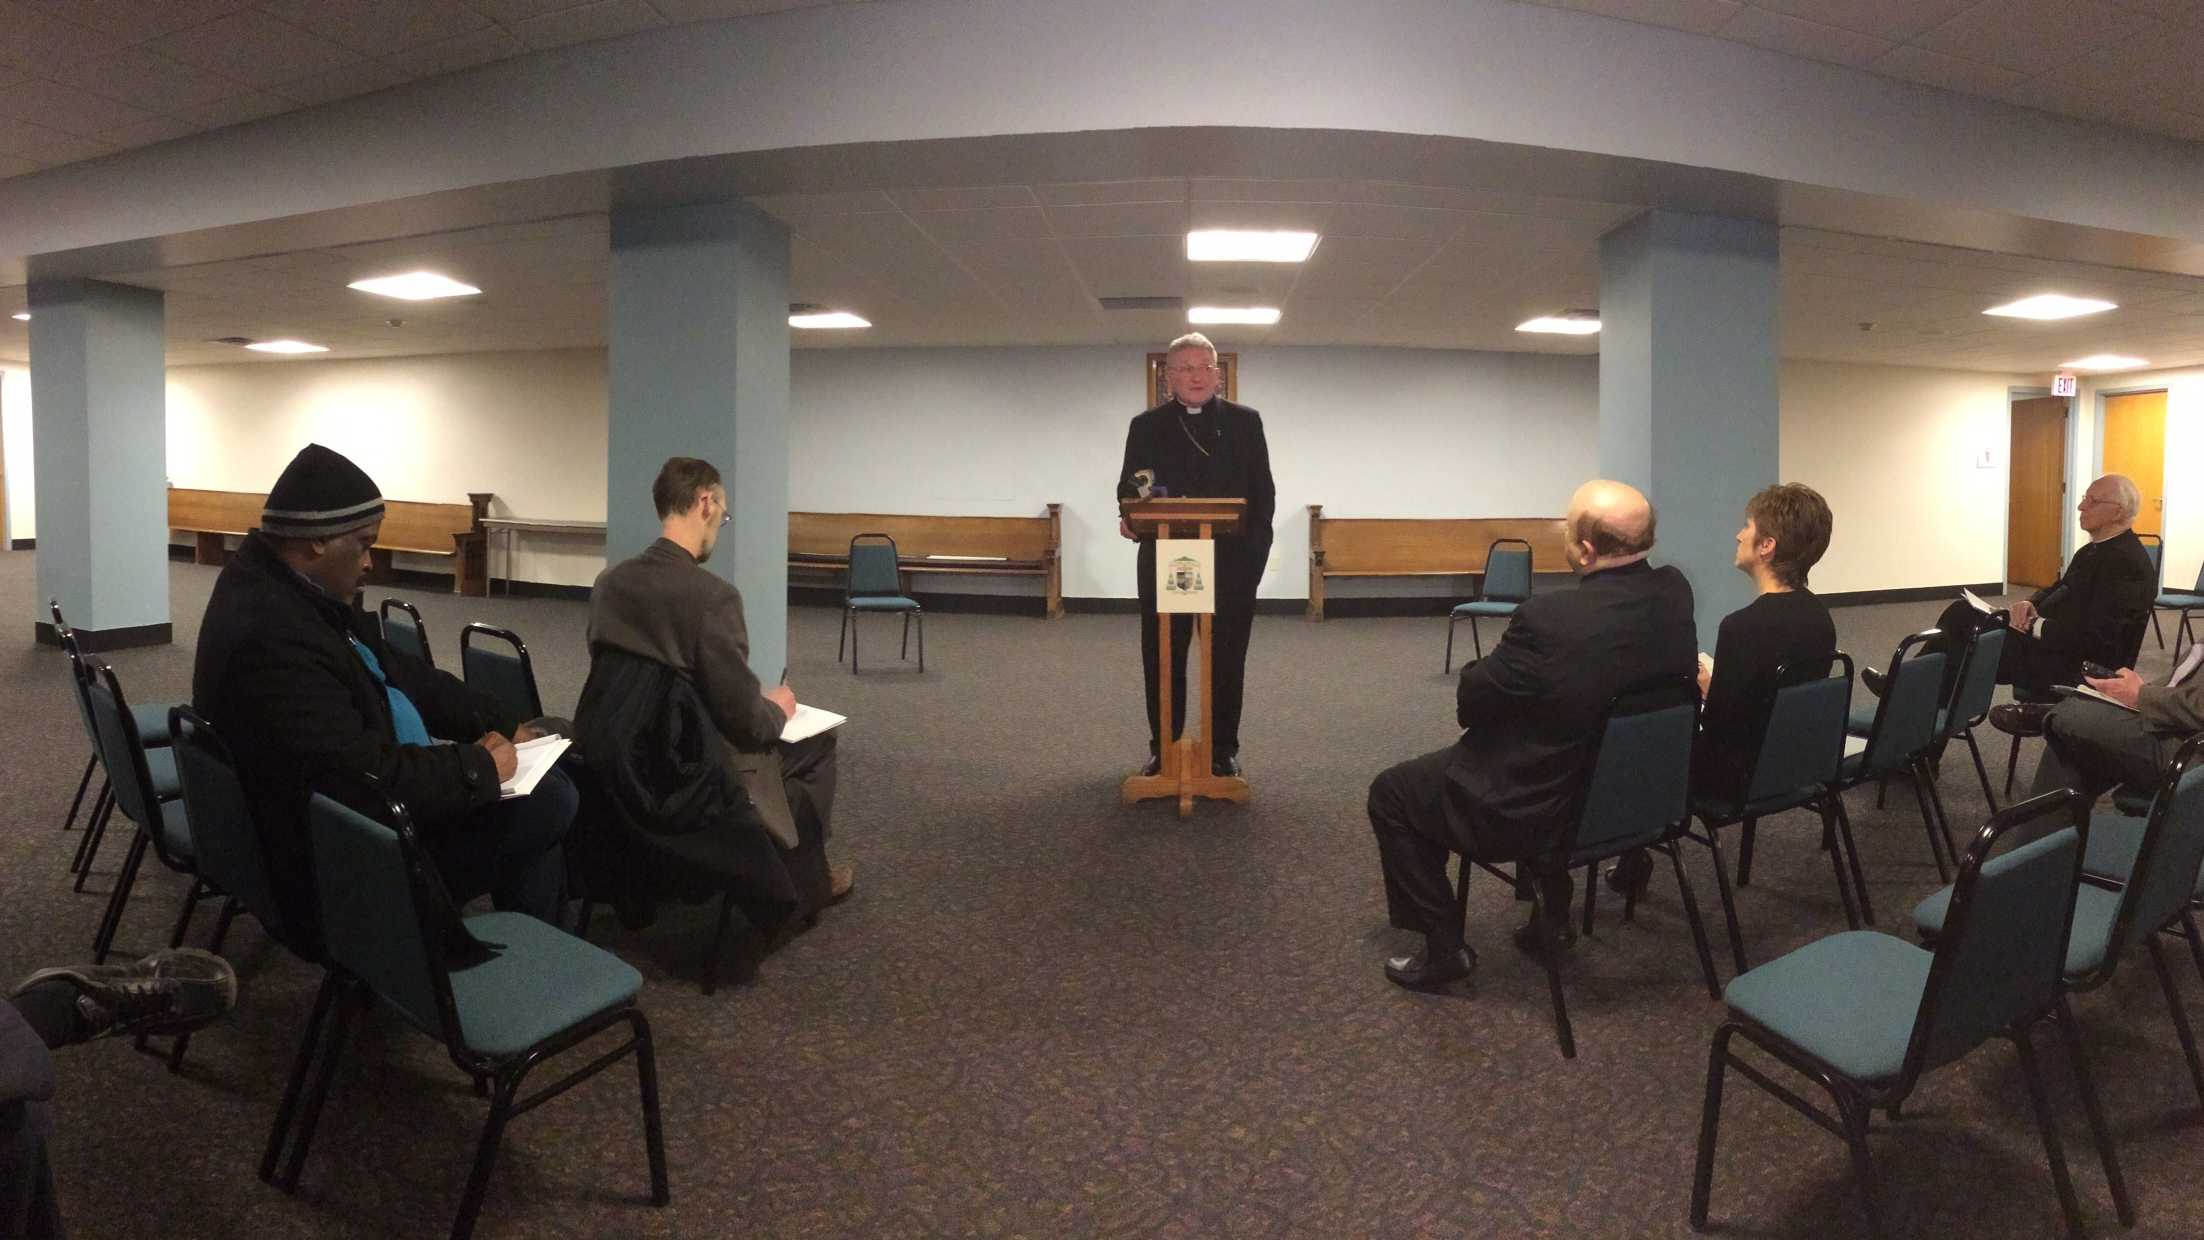 Bishop David A. Zubik of the Catholic Diocese of Pittsburgh presents the results of Our Campaign for The Church Alive!